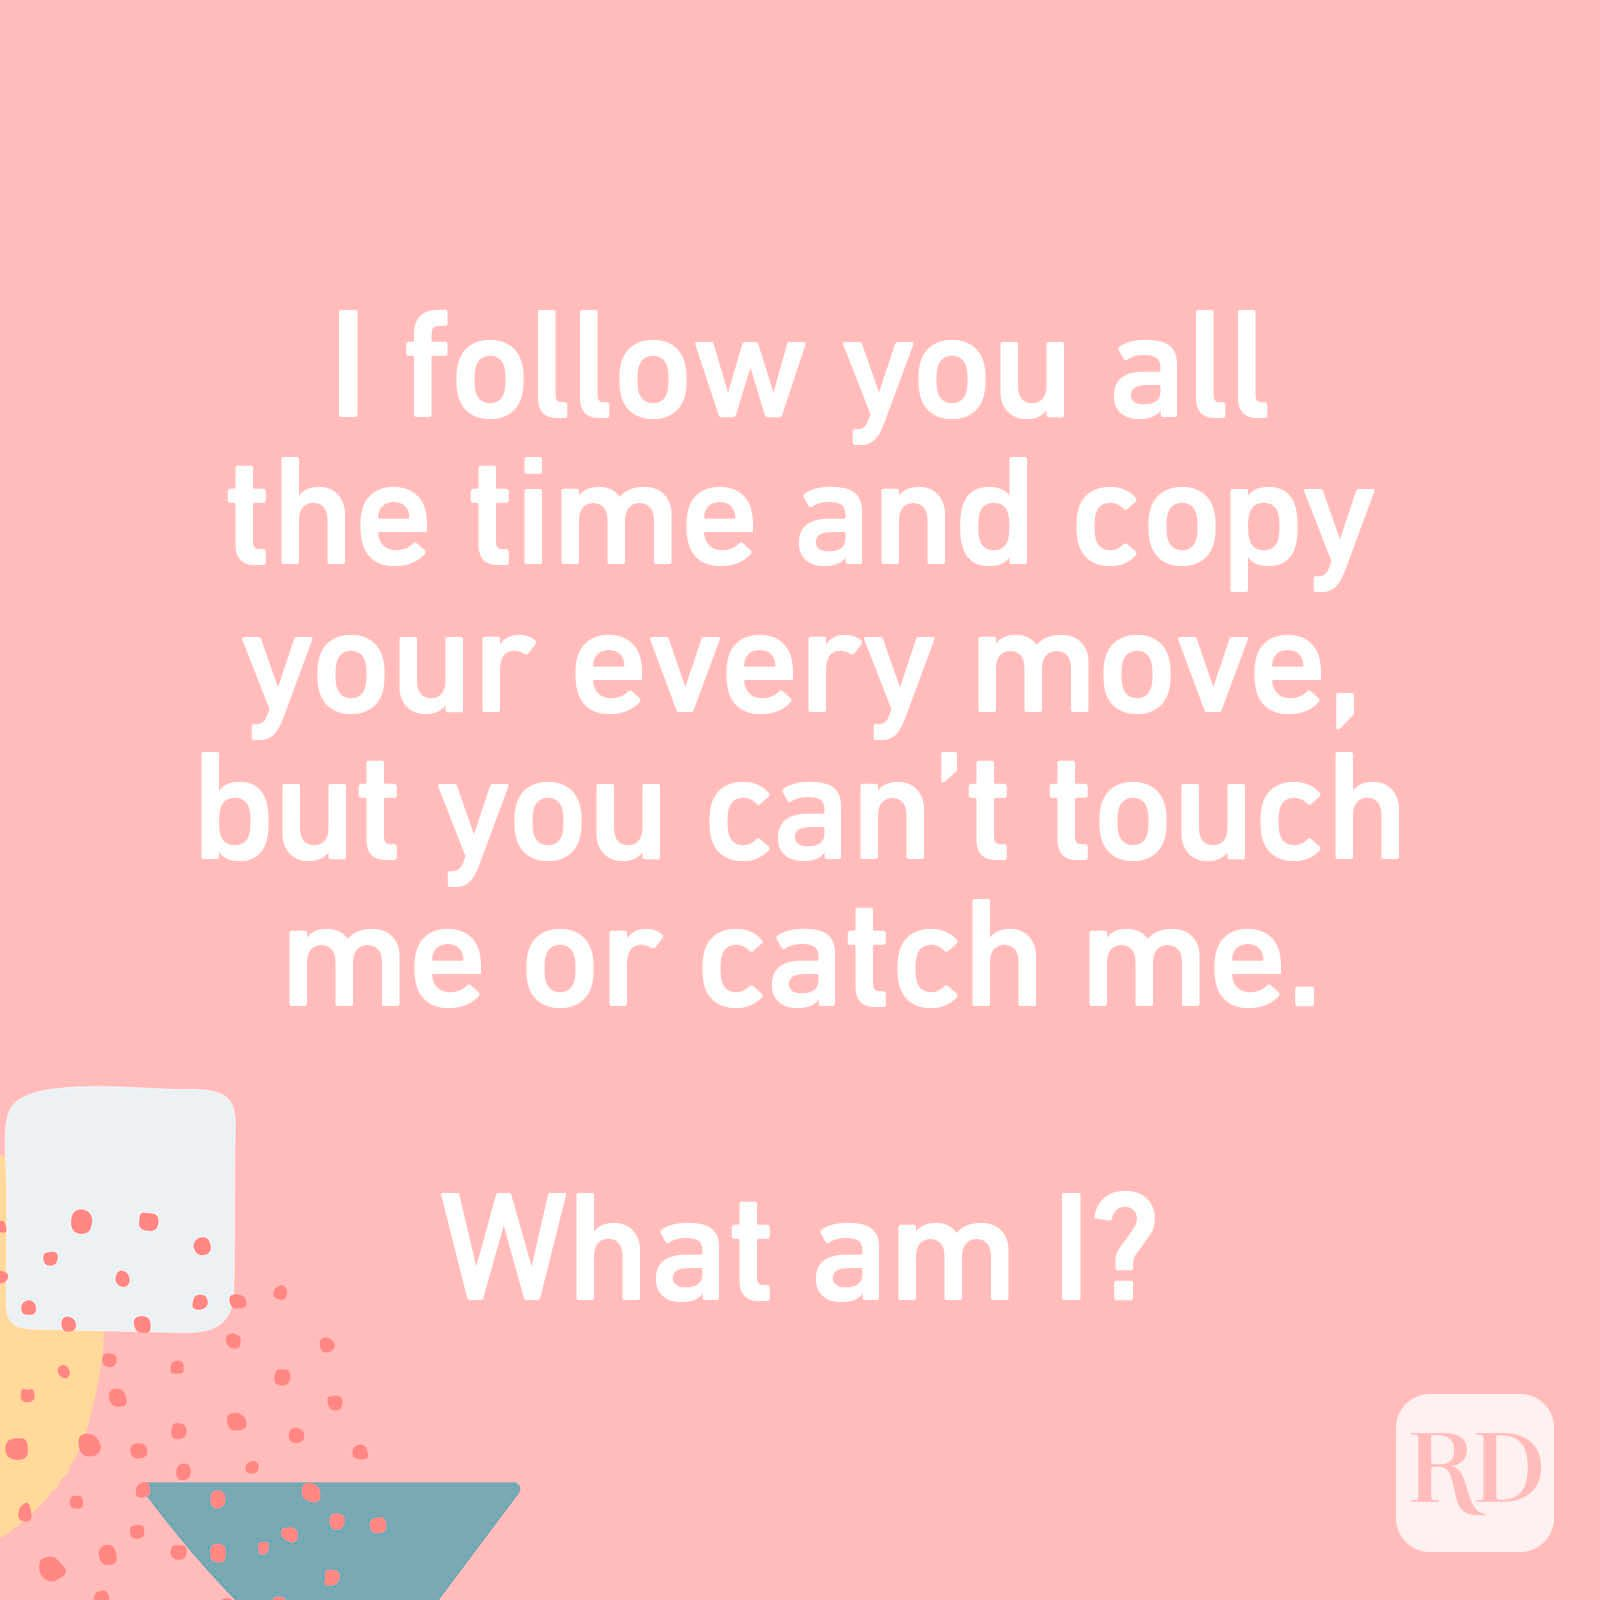 I follow you all the time and copy your every move, but you can't touch me or catch me. What am I?